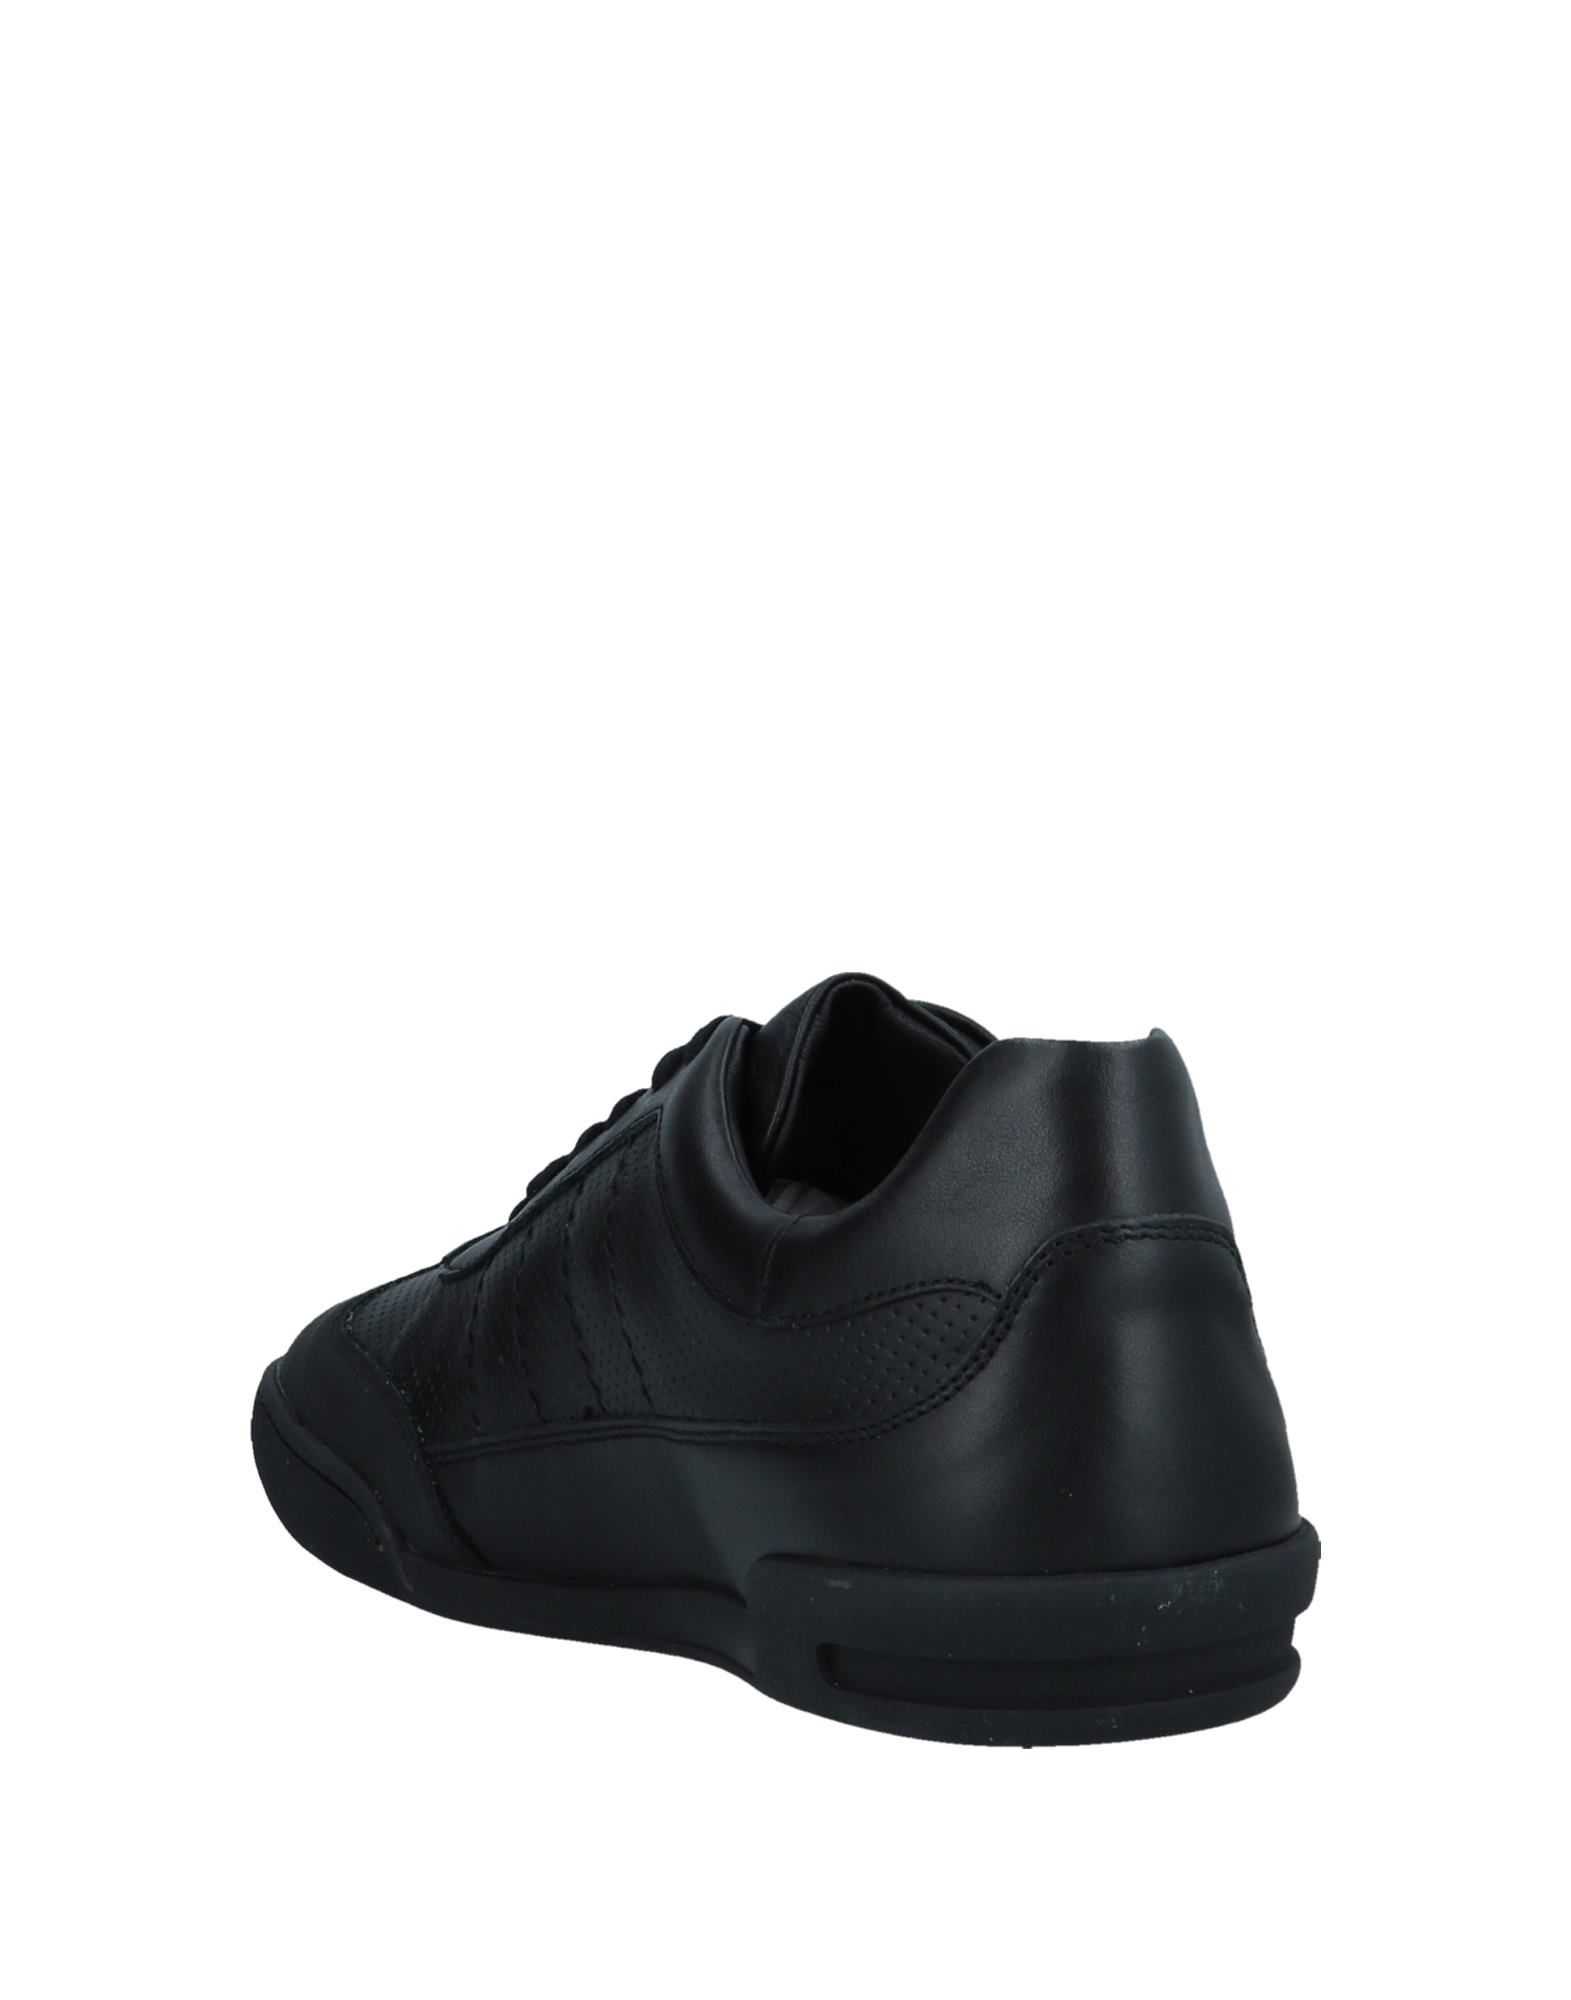 Bikkembergs Sneakers Sneakers Sneakers - Men Bikkembergs Sneakers online on  Canada - 11565128NH 25a65a